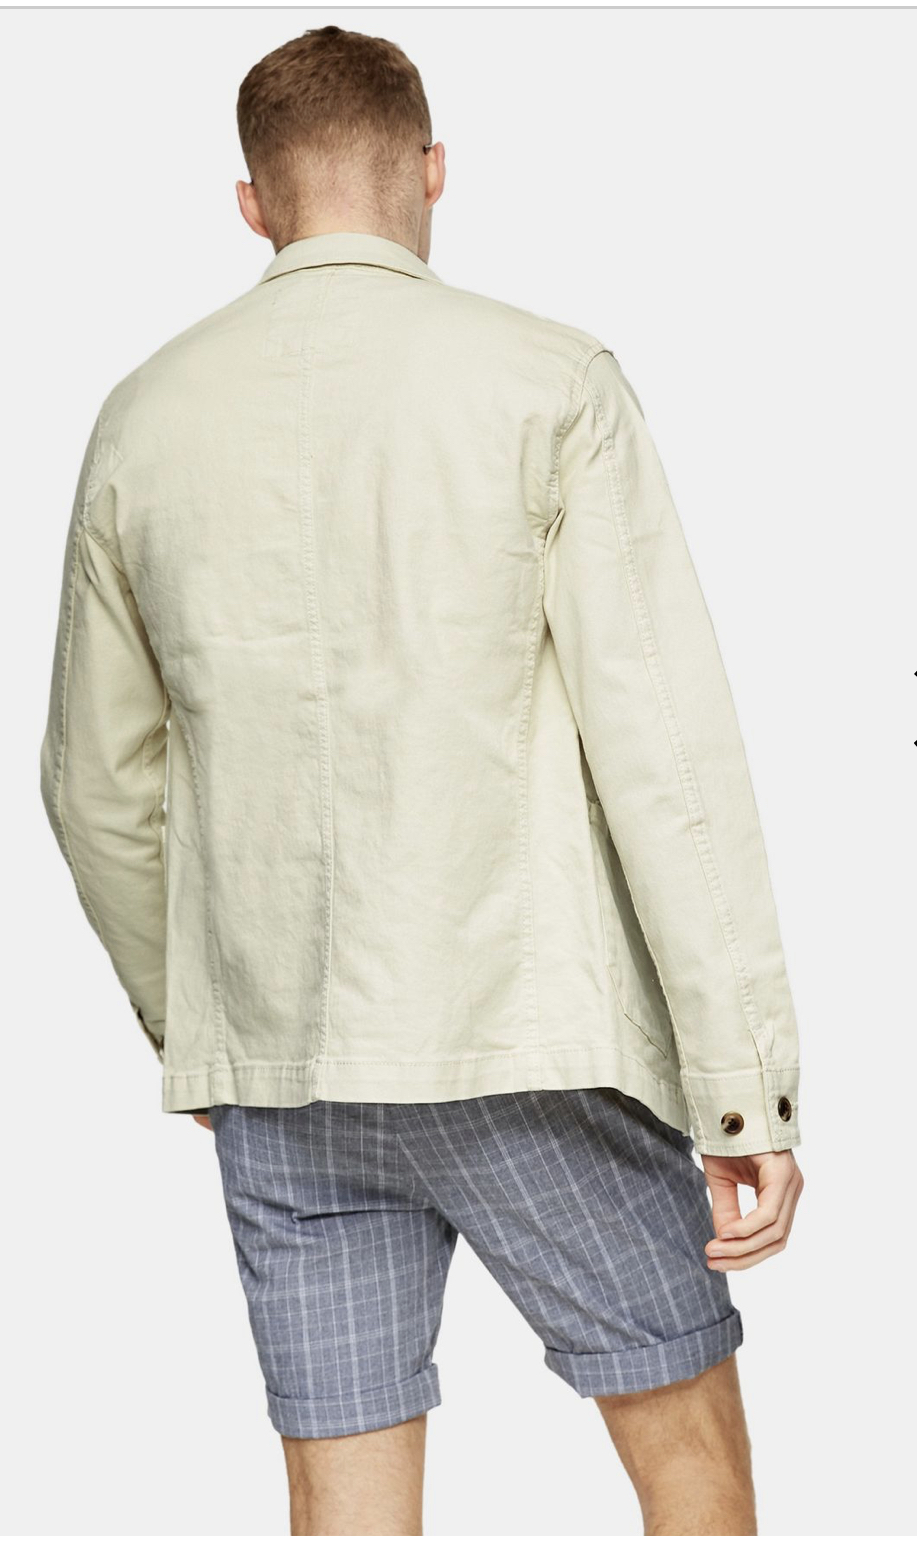 SELECTED HOMME White Lightweight Jacket